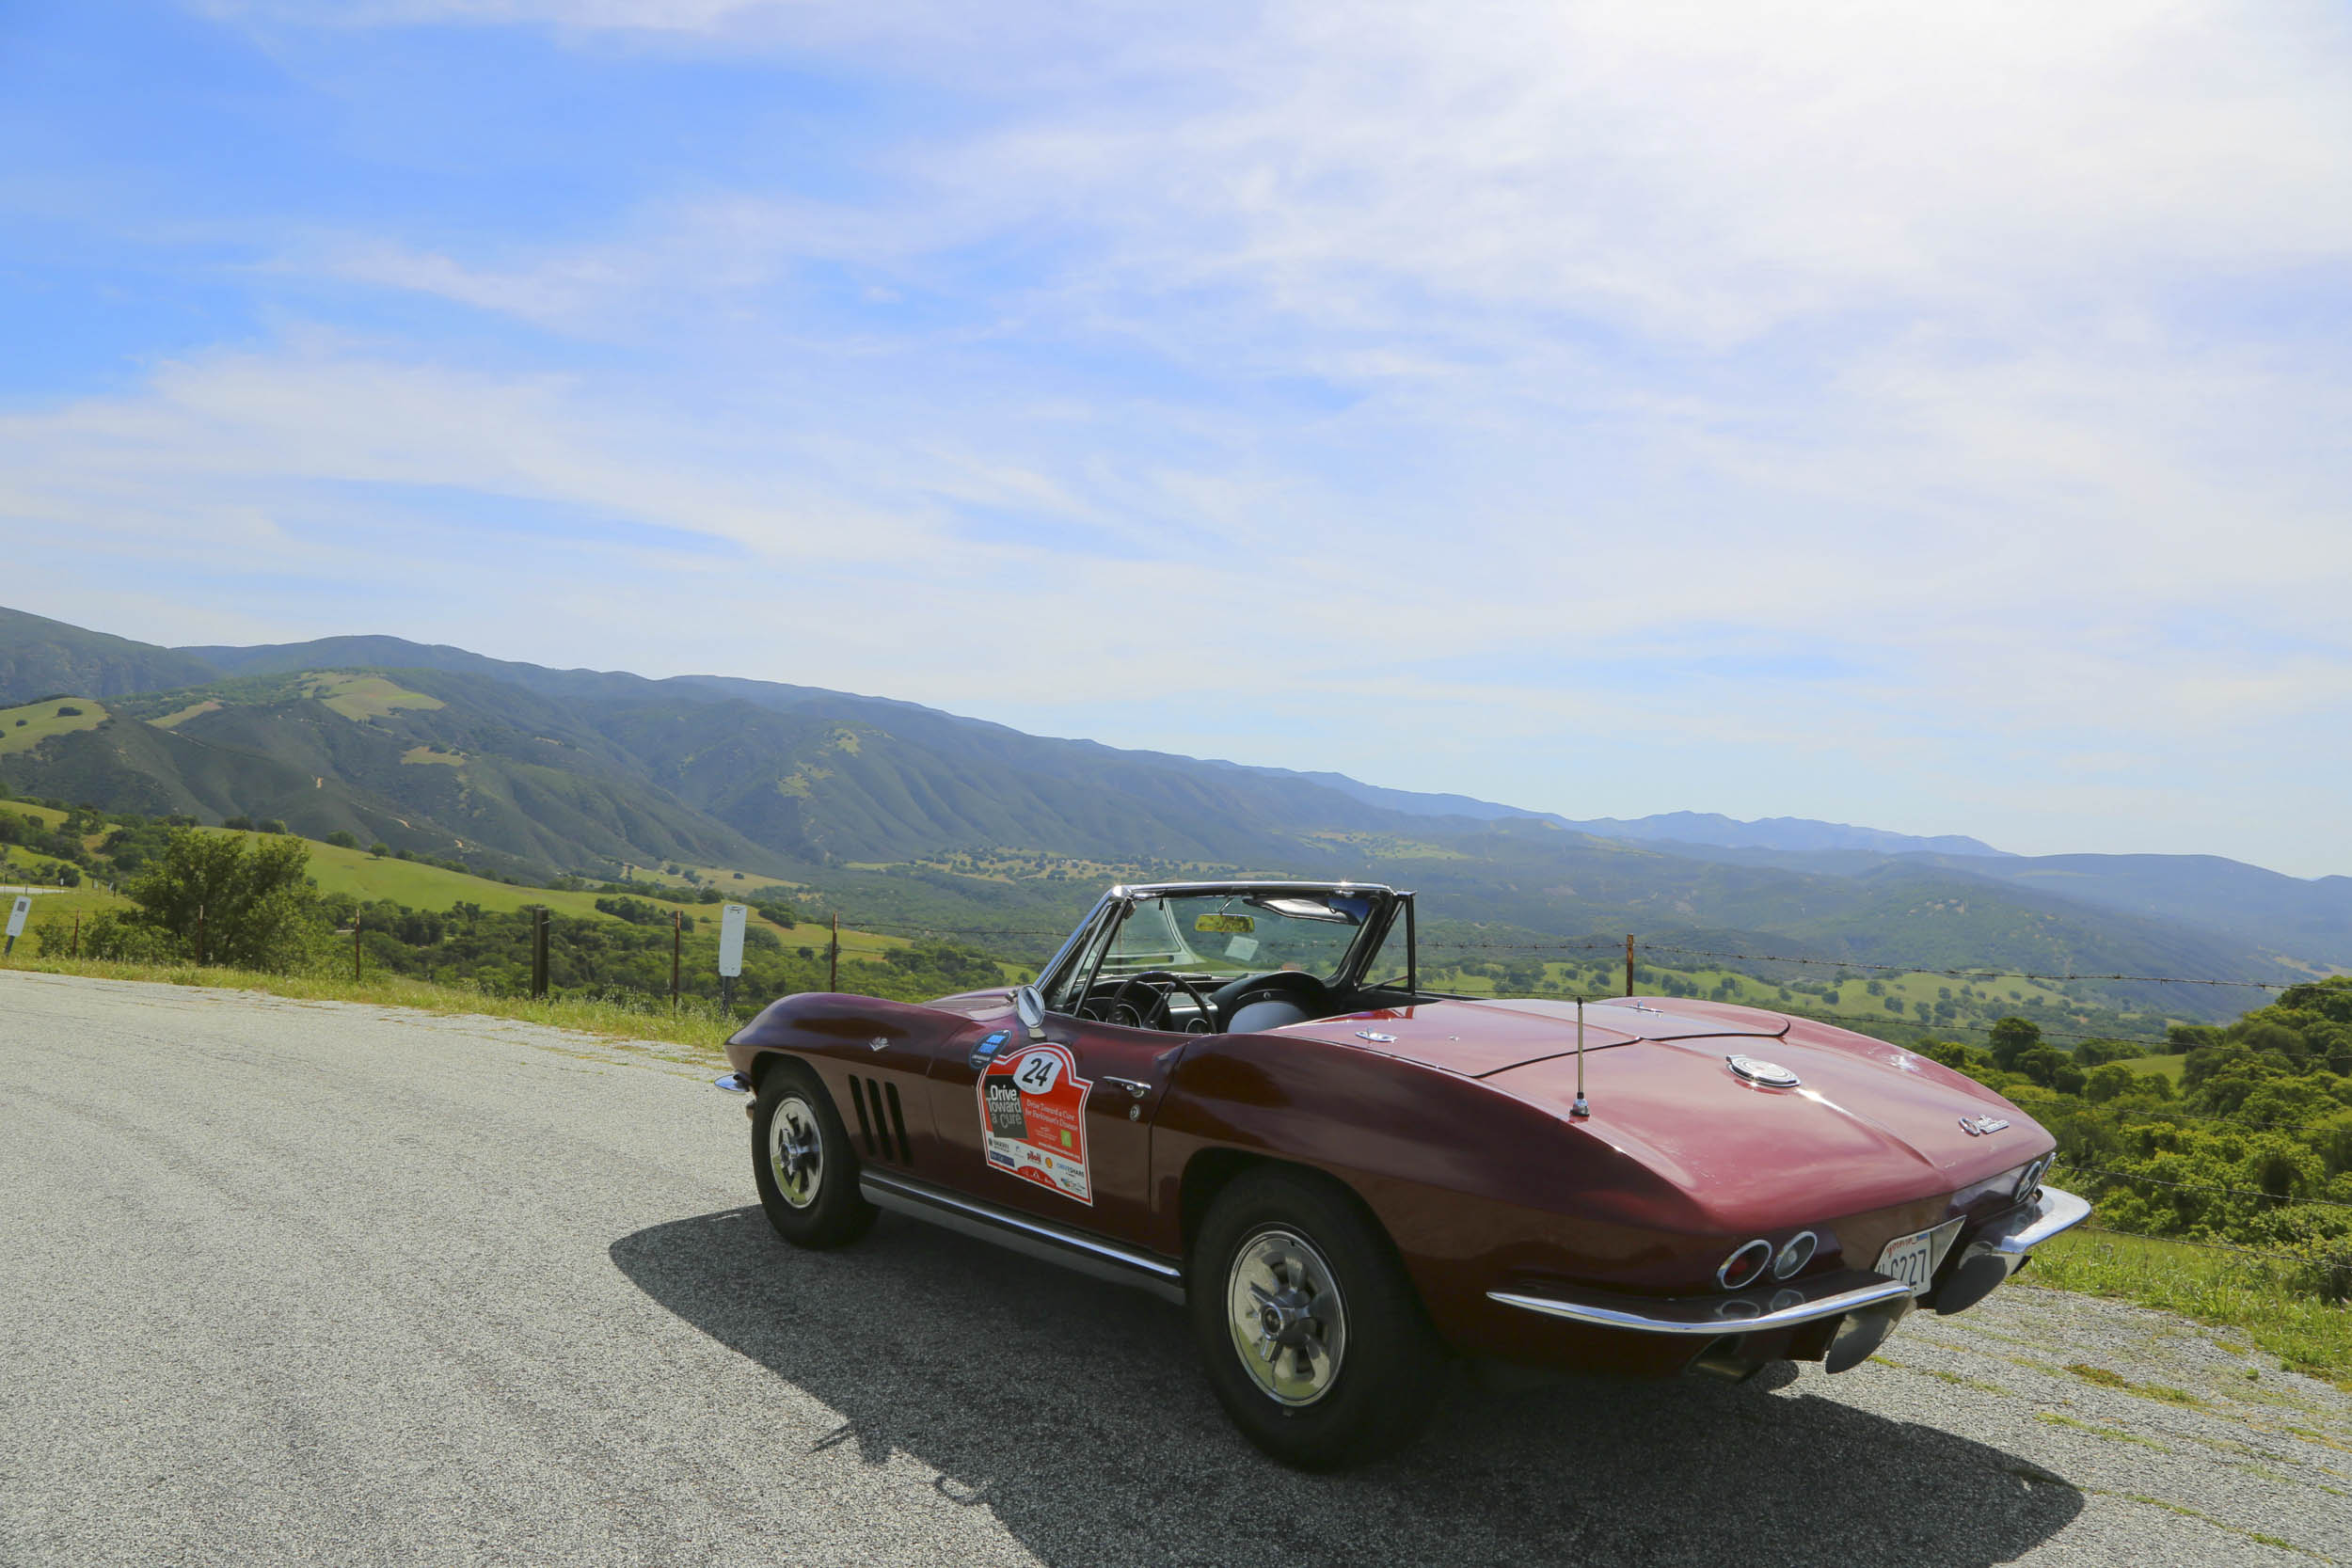 1965 Chevrolet Corvette convertible in the mountains